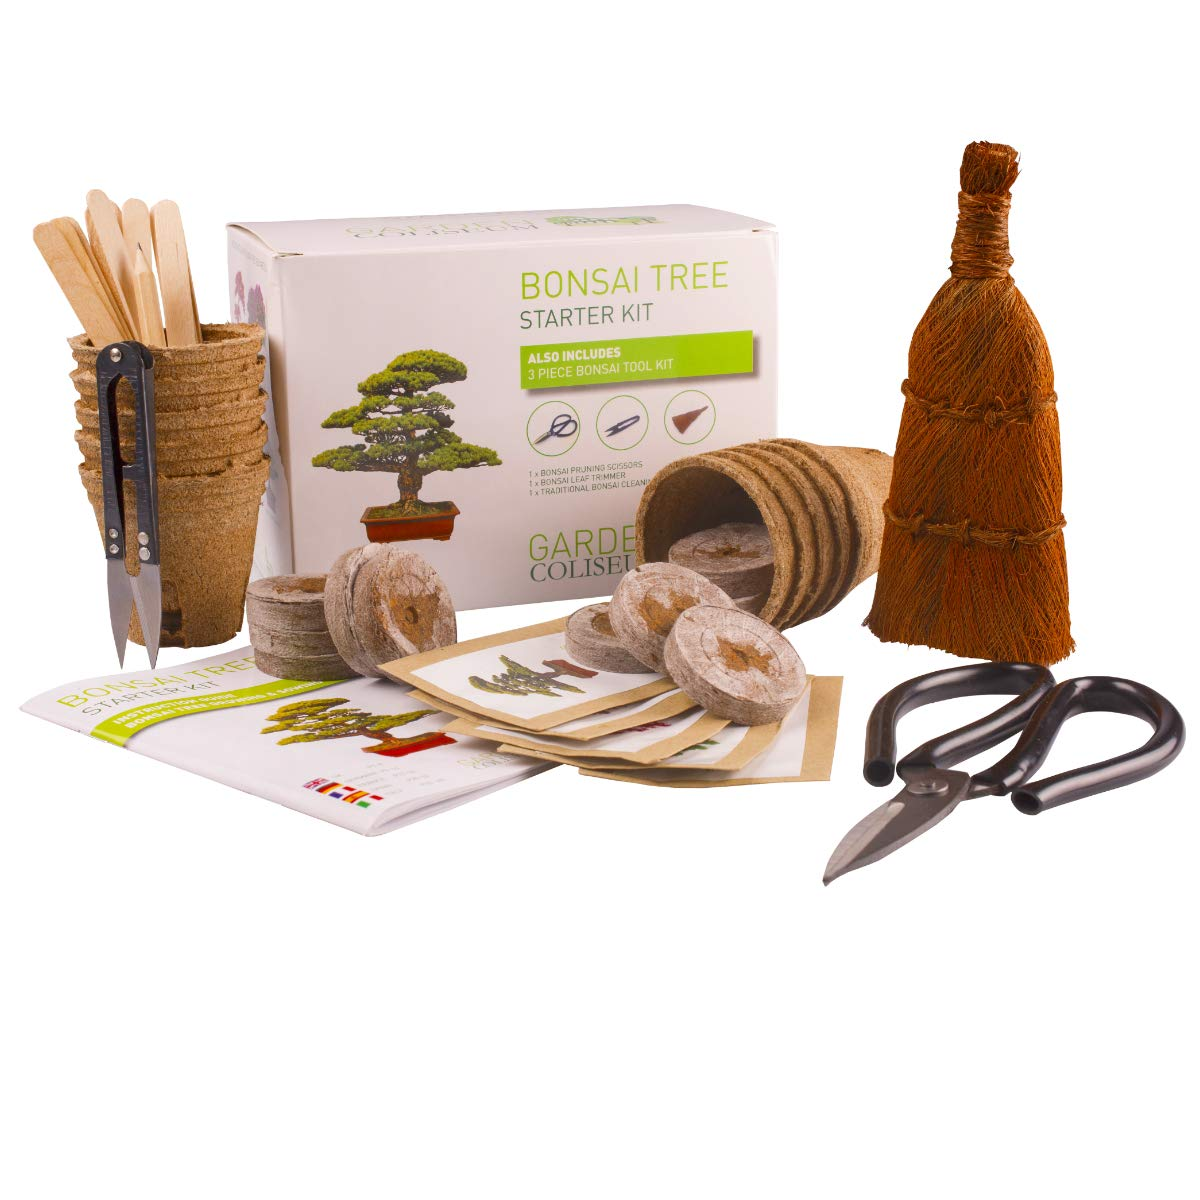 Bonsai Tree KIT - Grow Your OWN Bonsai Trees from Seeds - Gardening Gift Set - Premium Quality KIT - Big Value Pack, Seed Germination Starter Kit with 6 Seed Species. Includes 3 Superior Bonzai Tools